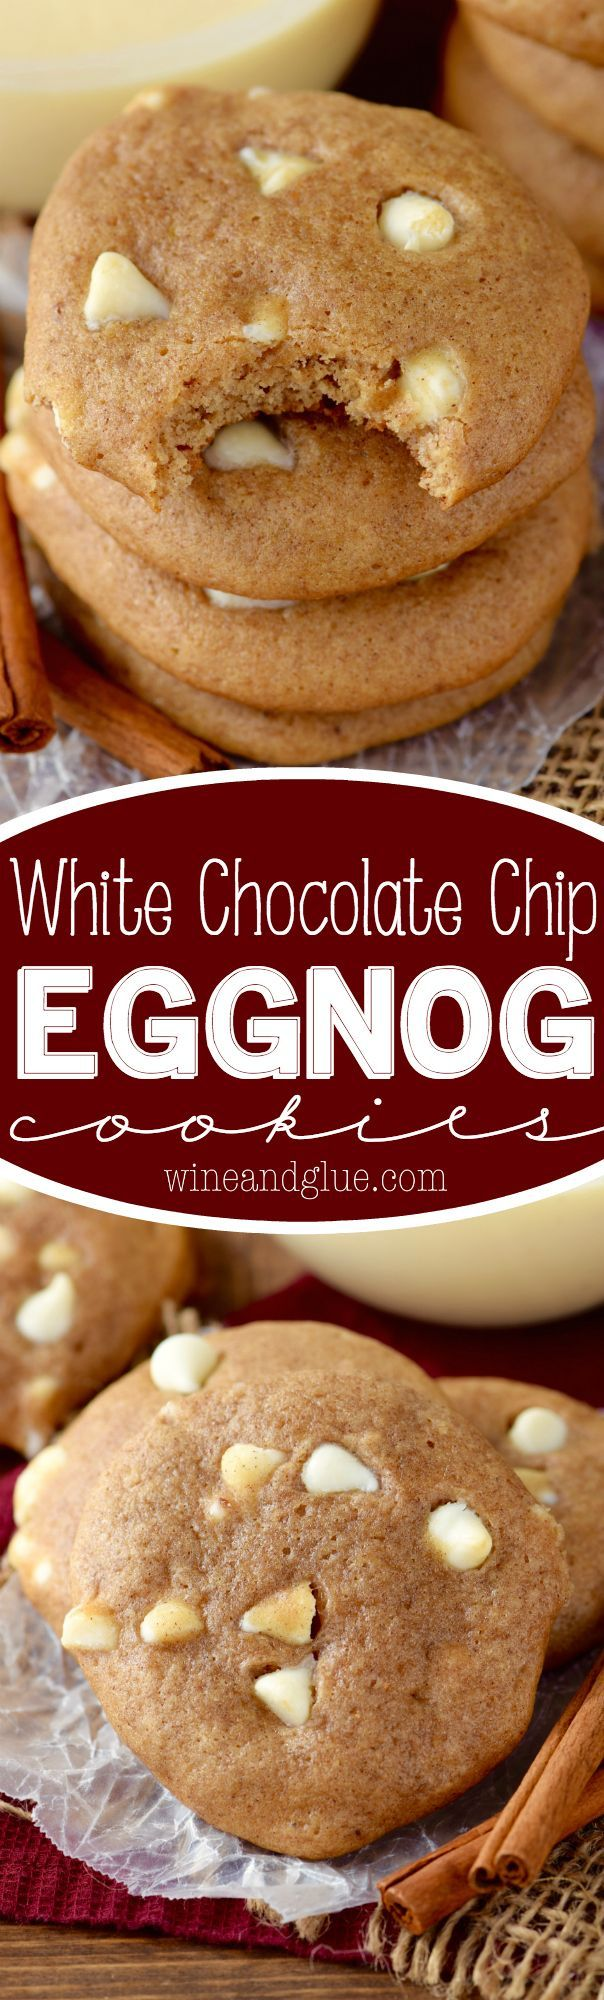 These White Chocolate Chip Eggnog Cookies are full of sweet spices and delicious eggnog taste! Chewy, soft, and delicious! Perfect holiday cookies! (Christmas Recipes Eggnog)